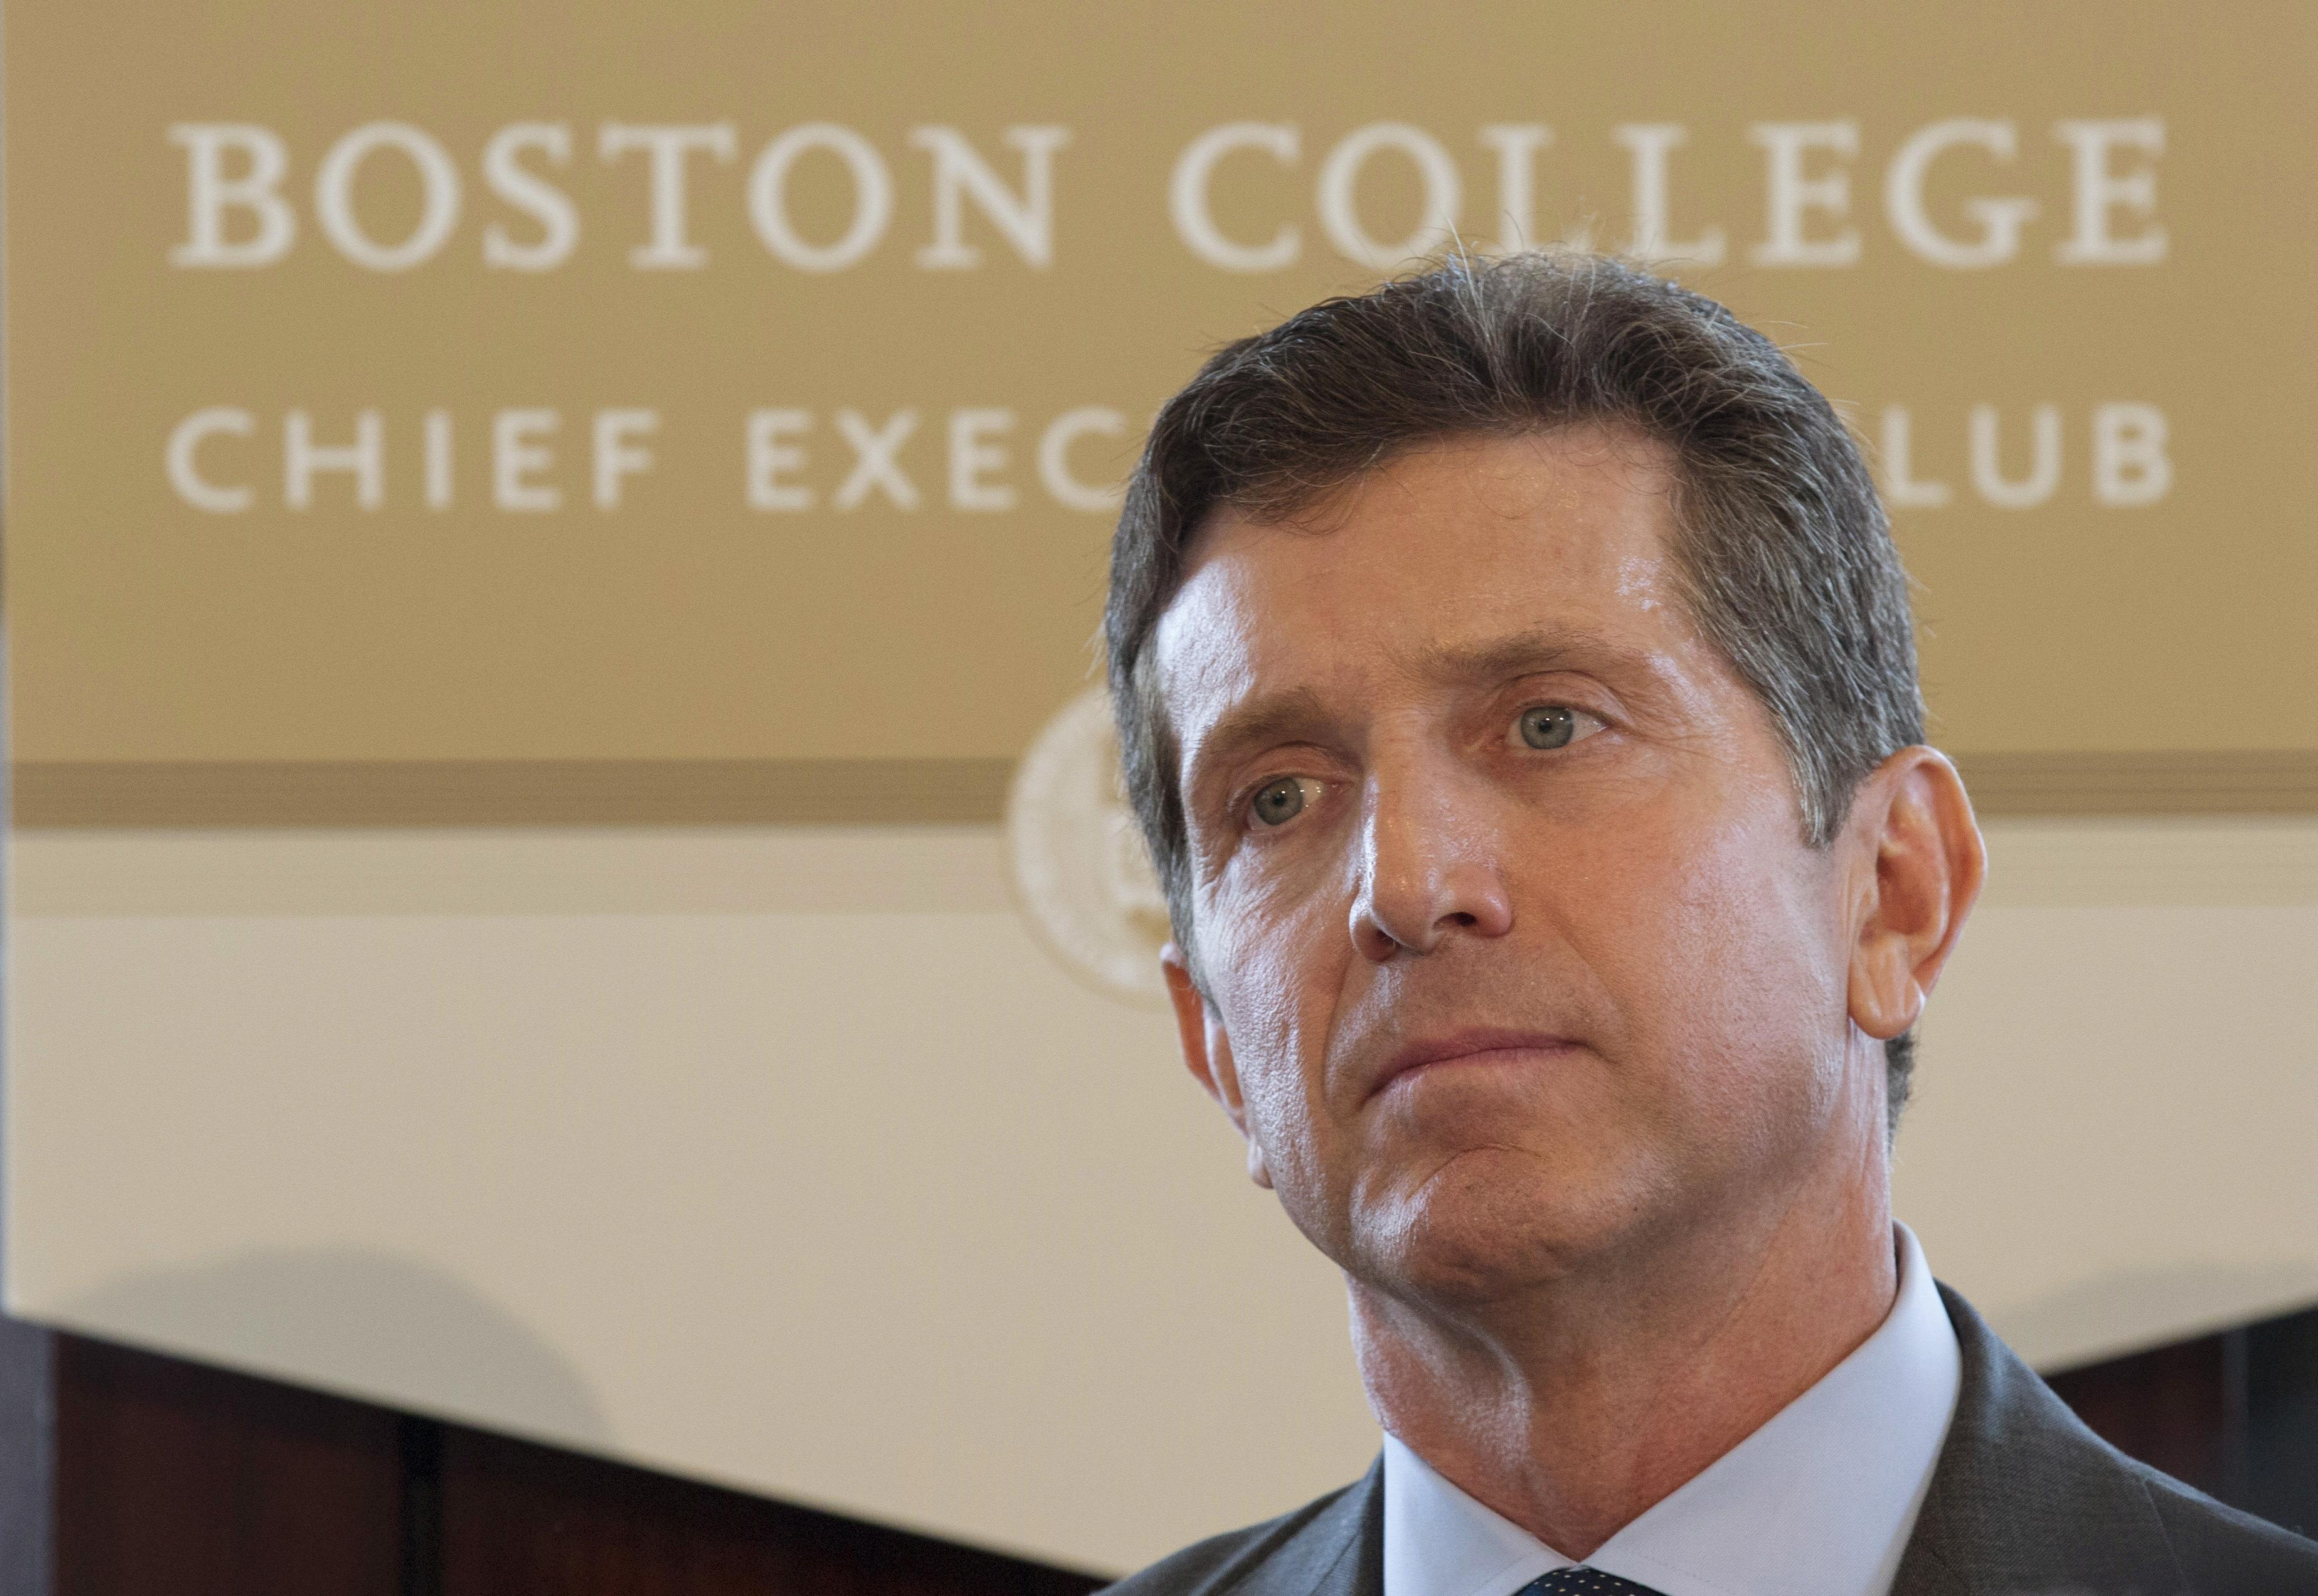 Alex Gorsky, CEO of Johnson & Johnson, listens as he is introduced to speak at the Boston College Chief Executives Club luncheon in Boston, Massachusetts September 11, 2015.   Brian Snyder